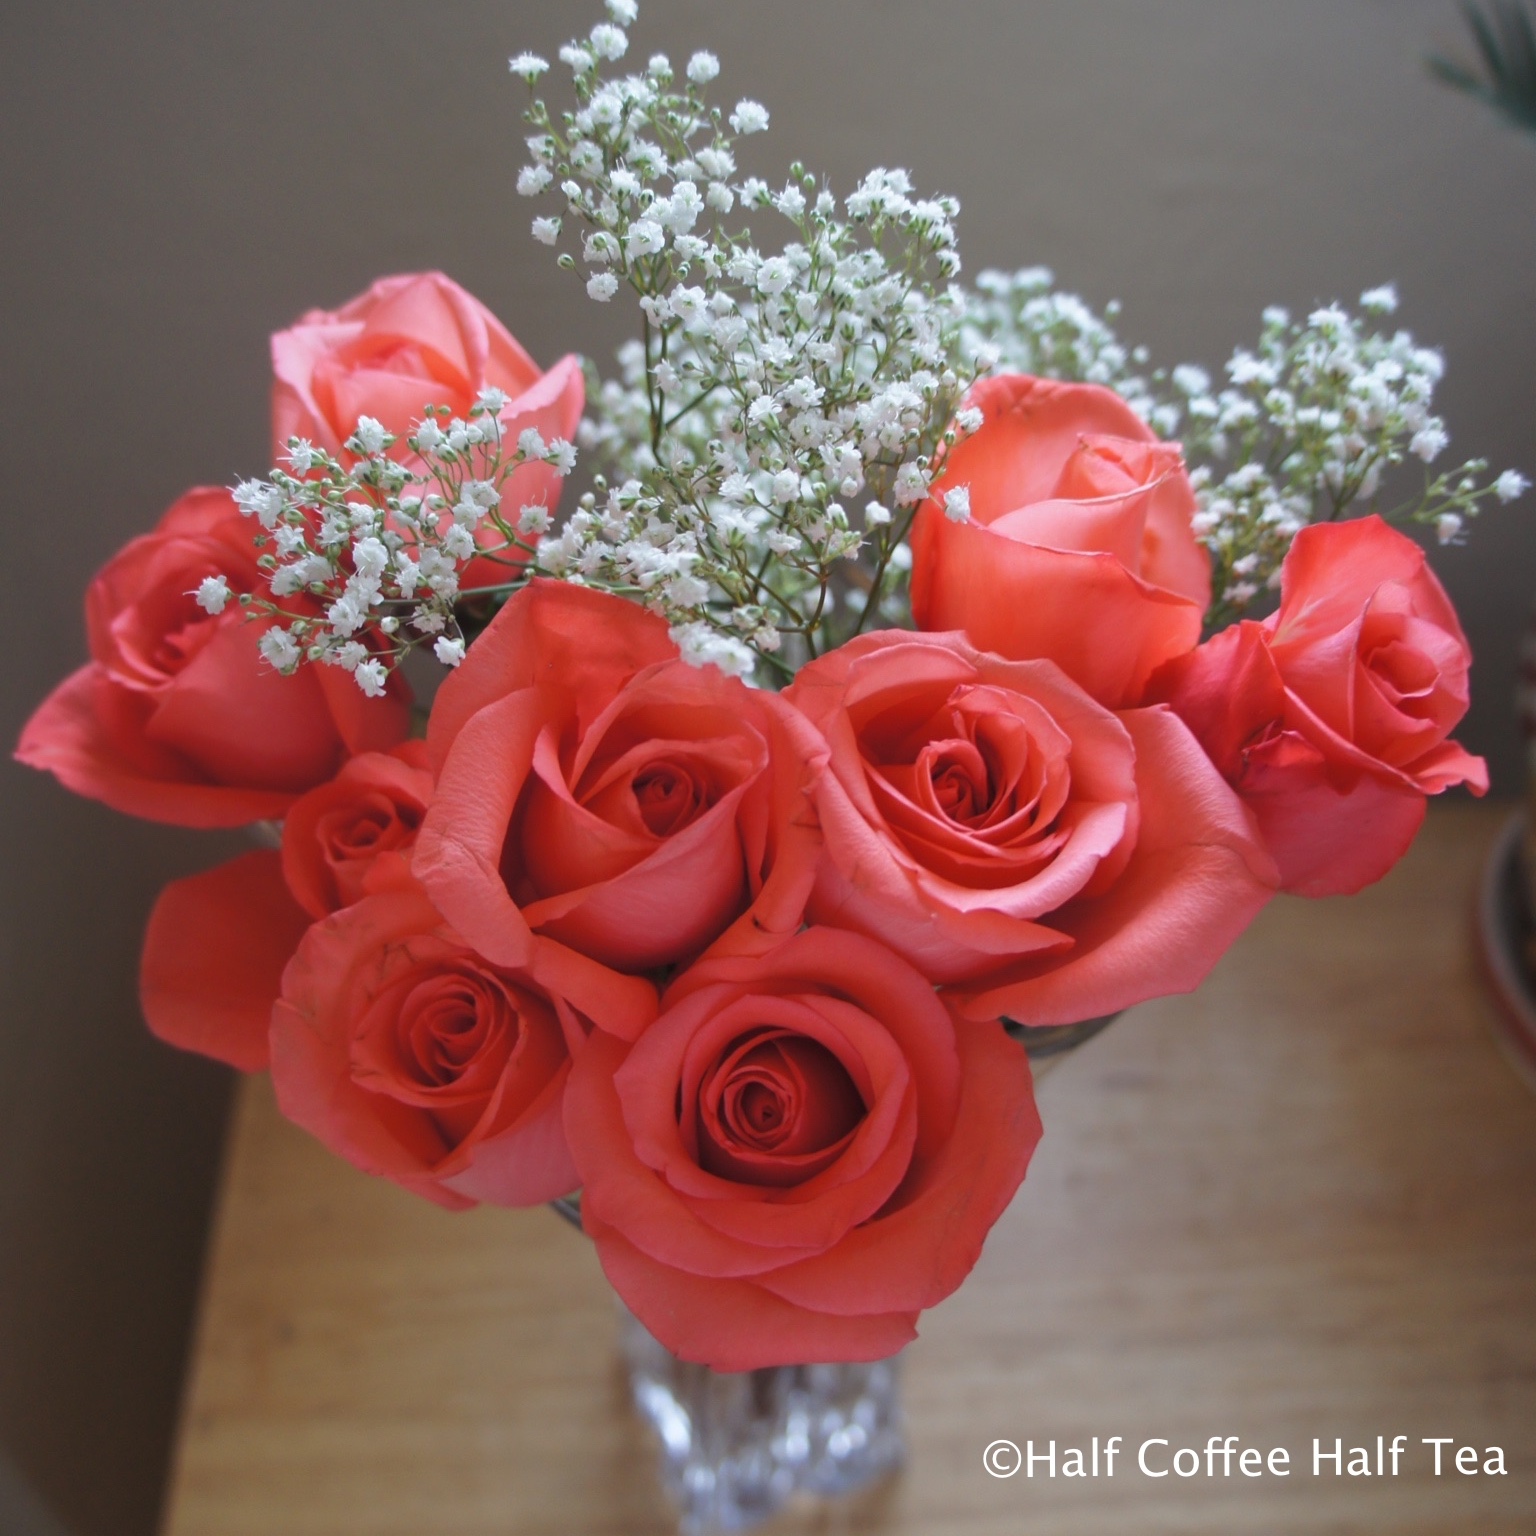 Test tube flower vase half coffee half tea ps the flowers are 50 off post valentines day izmirmasajfo